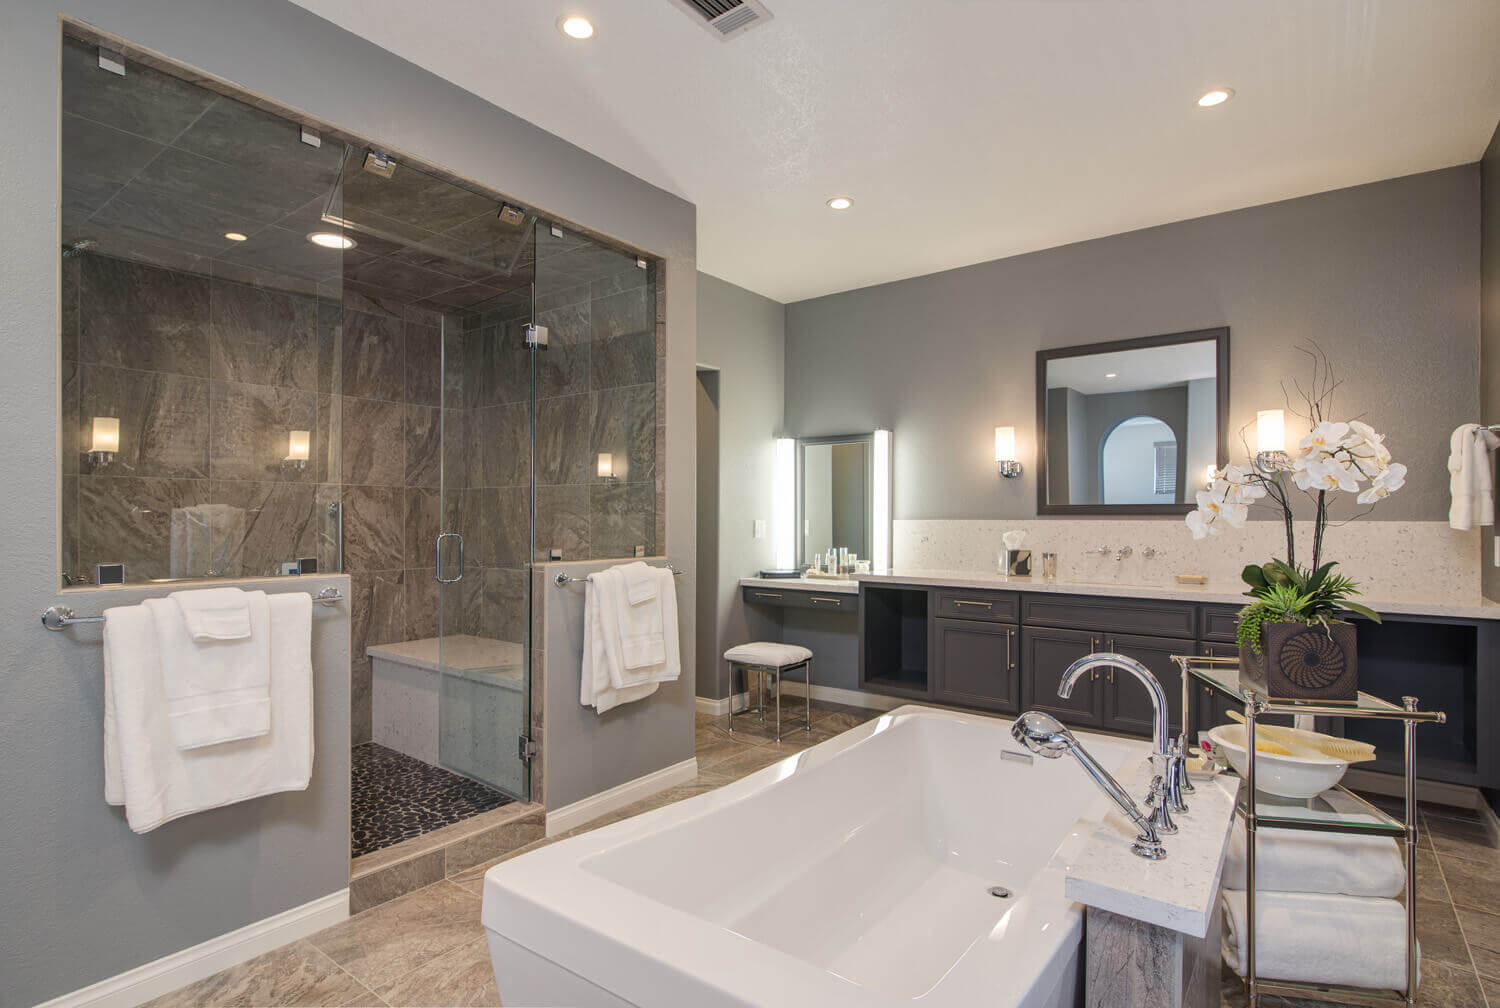 2018 bathroom renovation cost get prices for the most popular updates Average cost to remodel a small bathroom